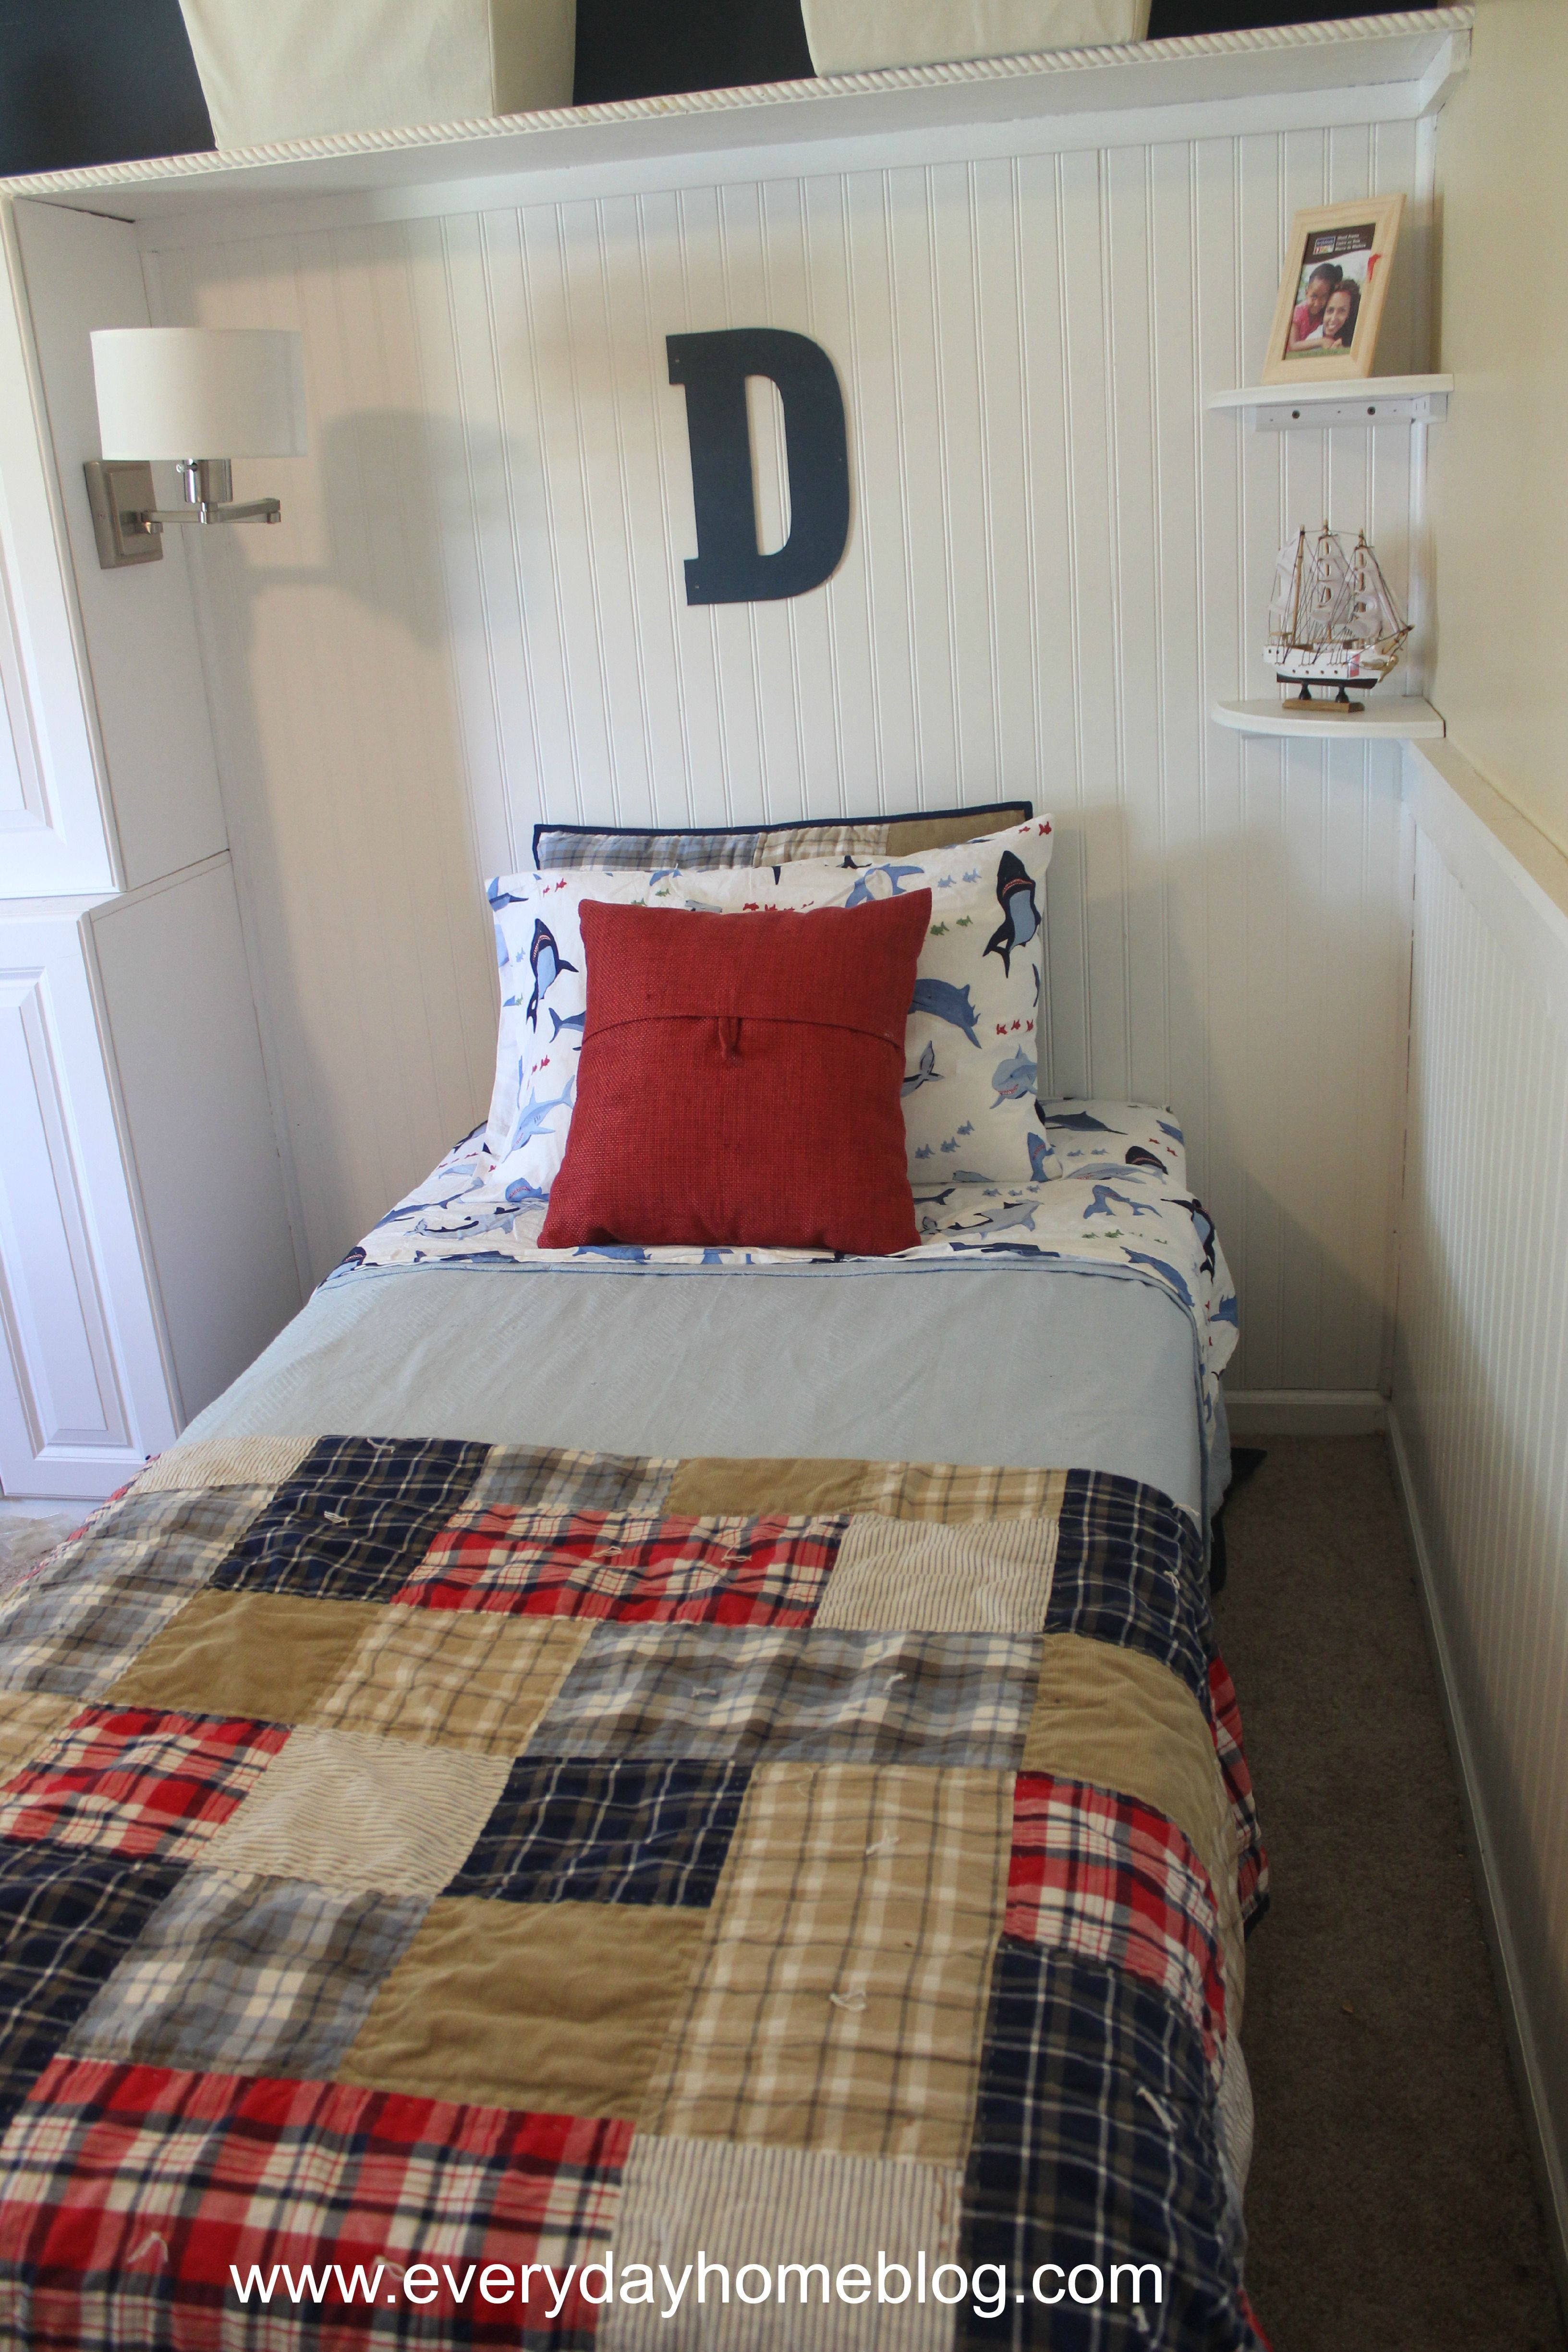 quilts blanket handmade owl infant lap bedding a cot rules full linens size sets mint fullxfull white for blankets teal fleece of woodland room cradle coverlet baby motif about navy grey blue floor boy quilt crib and patchwork nursery not to follow pink star